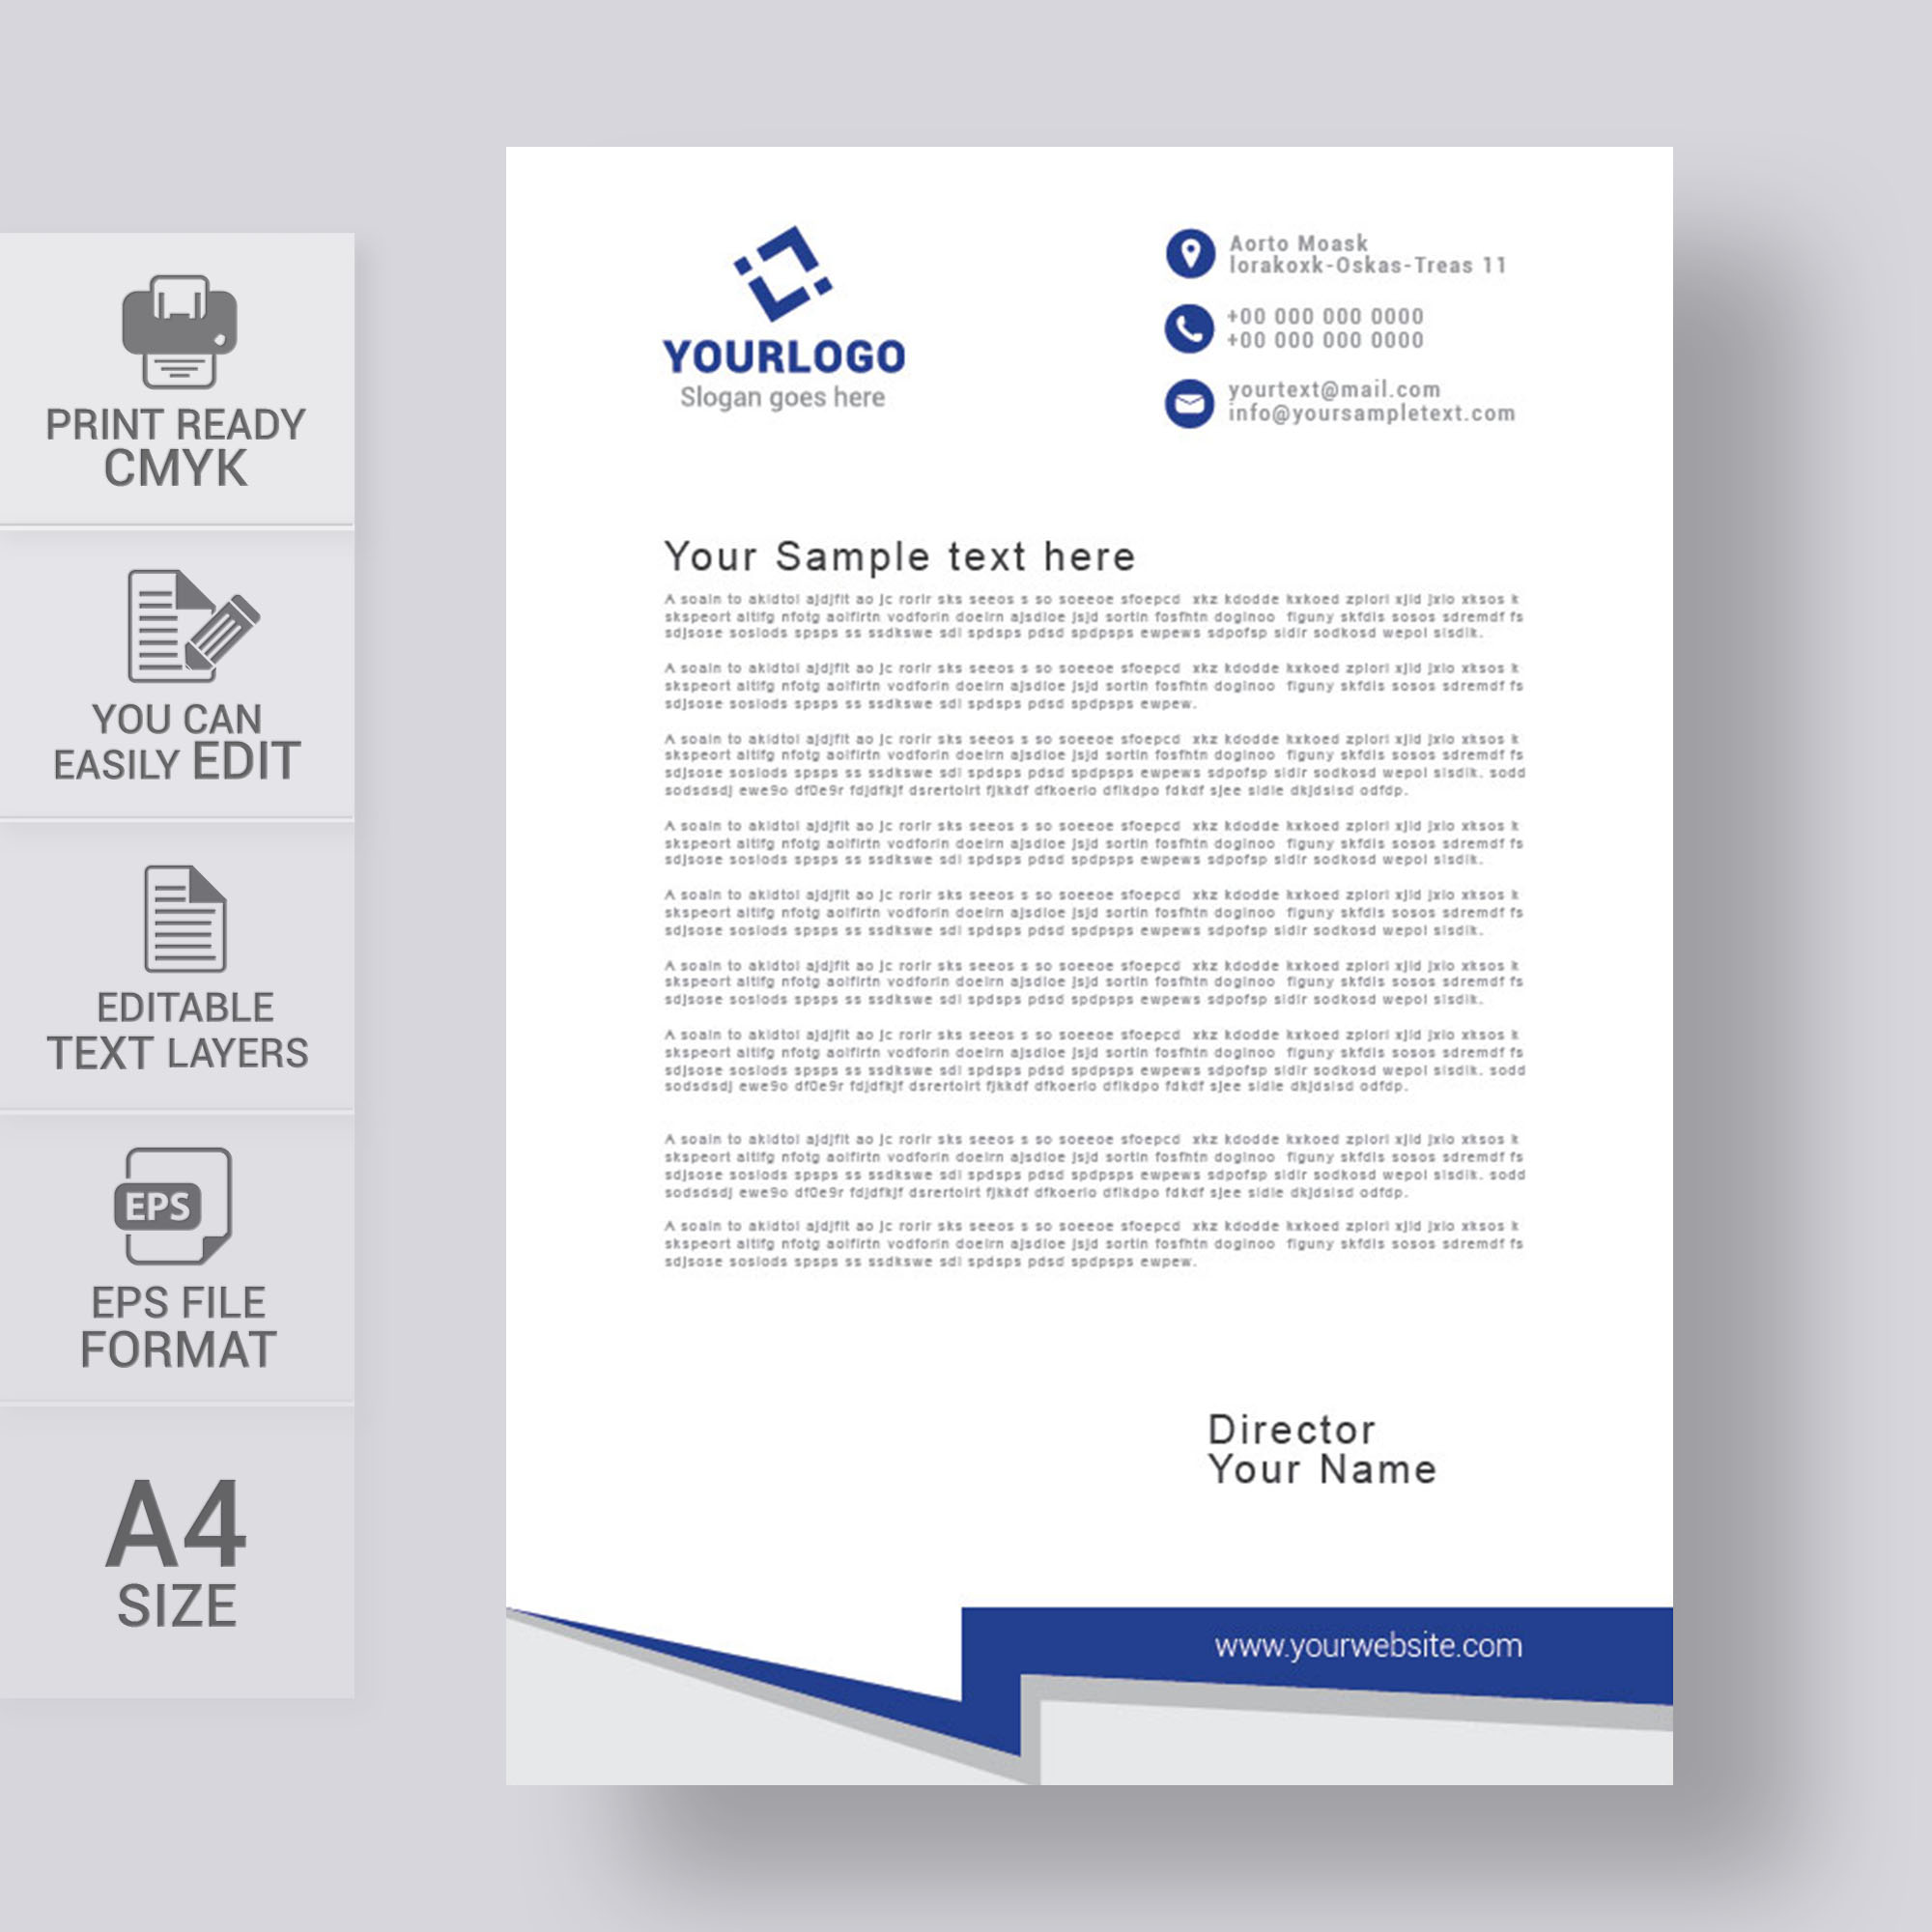 Letterheads, Letterhead Design, Letterhead Template, Print Template,  Vector, Abstract, Business  Business Letterhead Template Free